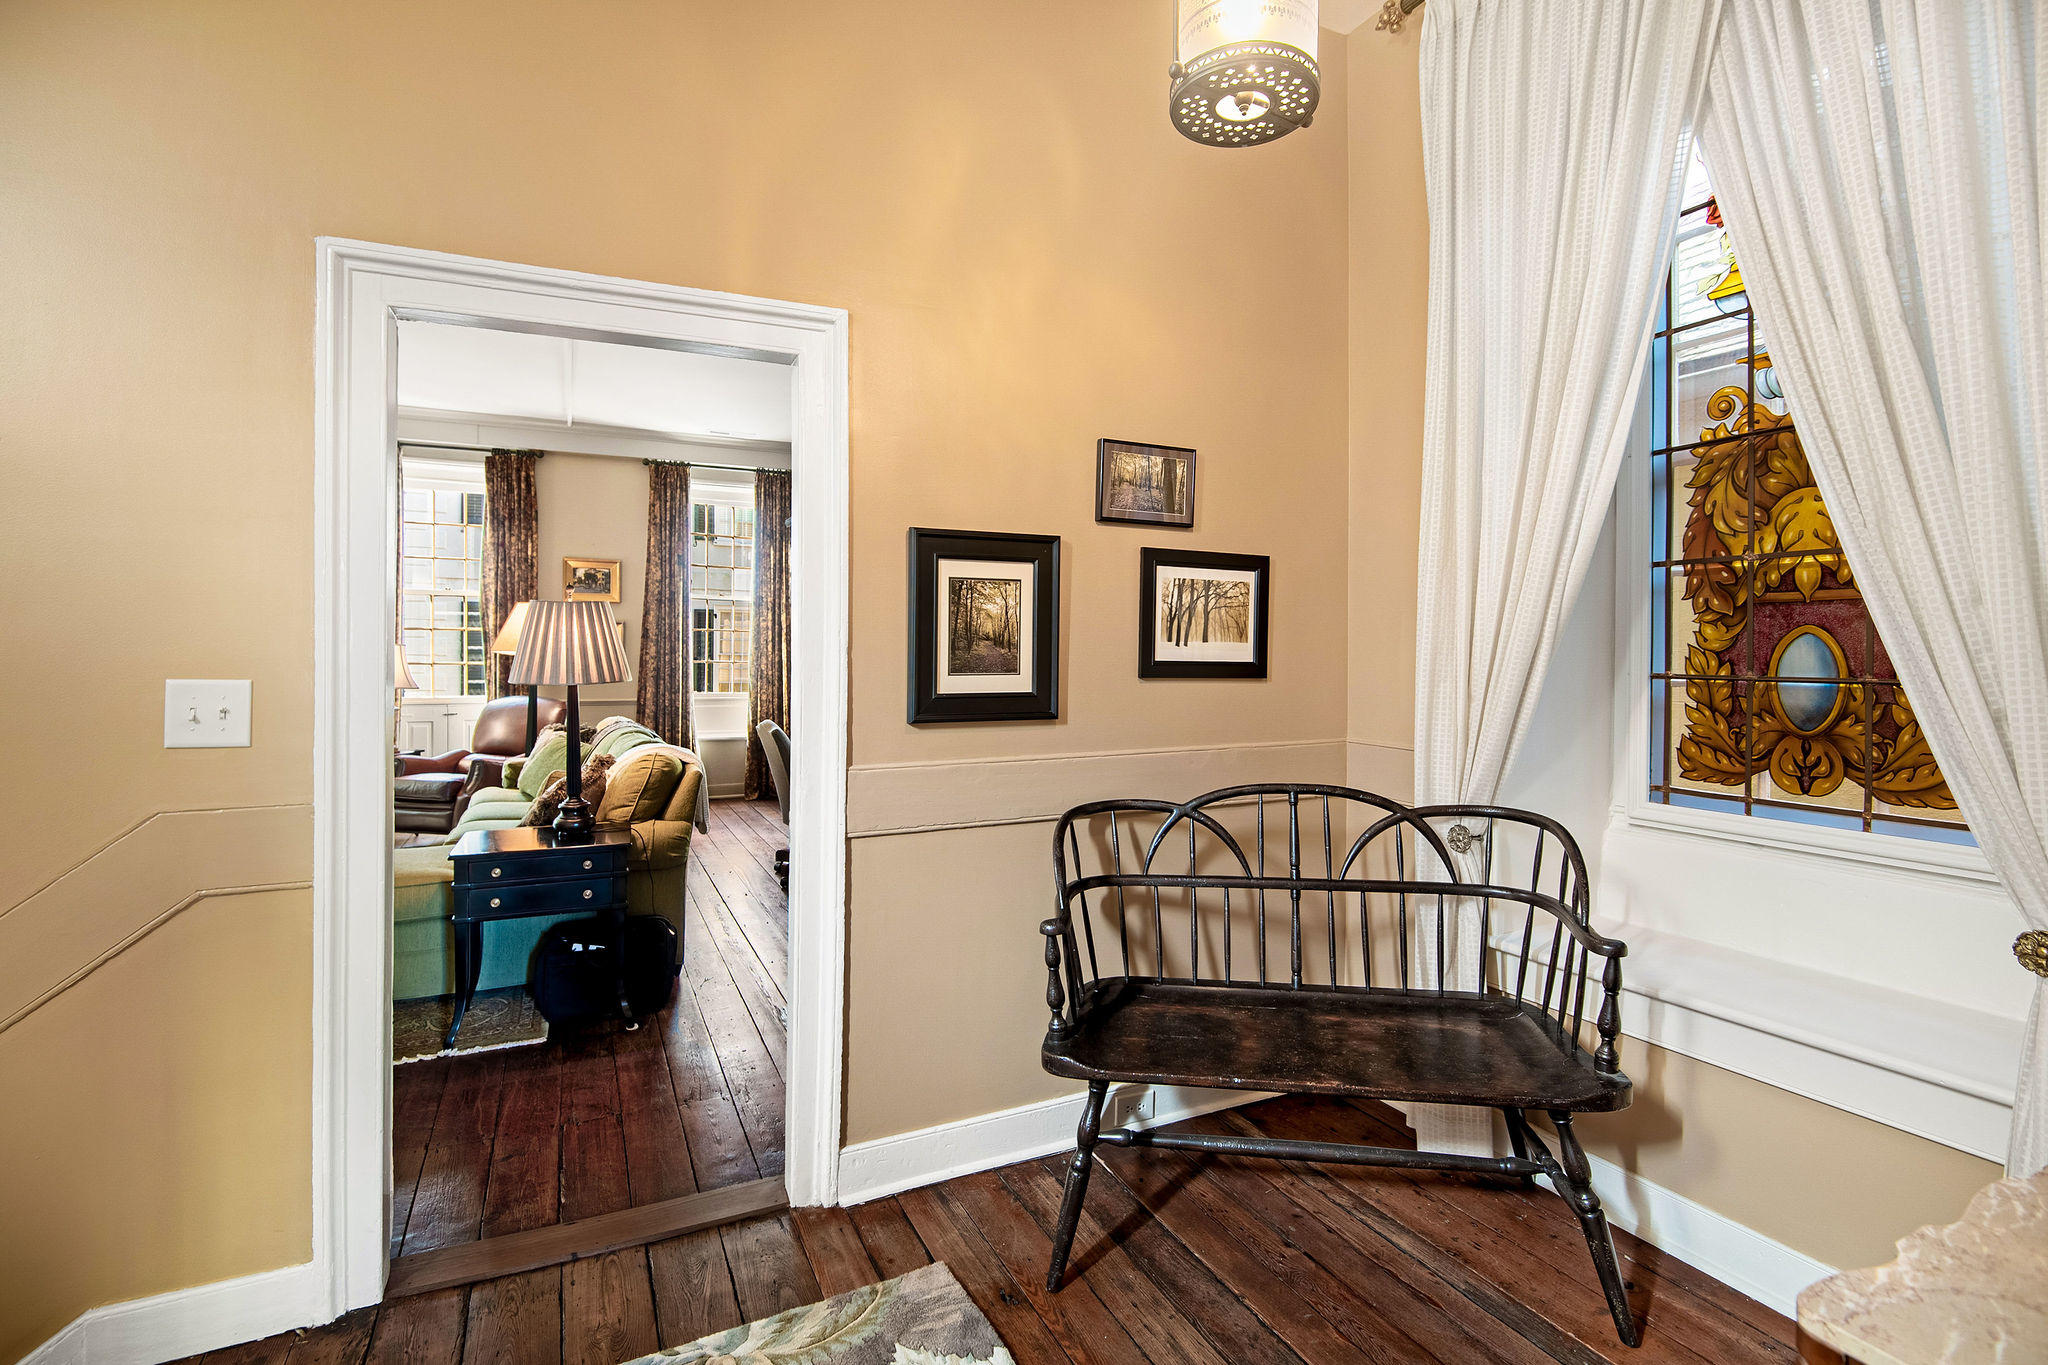 South of Broad Homes For Sale - 54 Tradd, Charleston, SC - 62